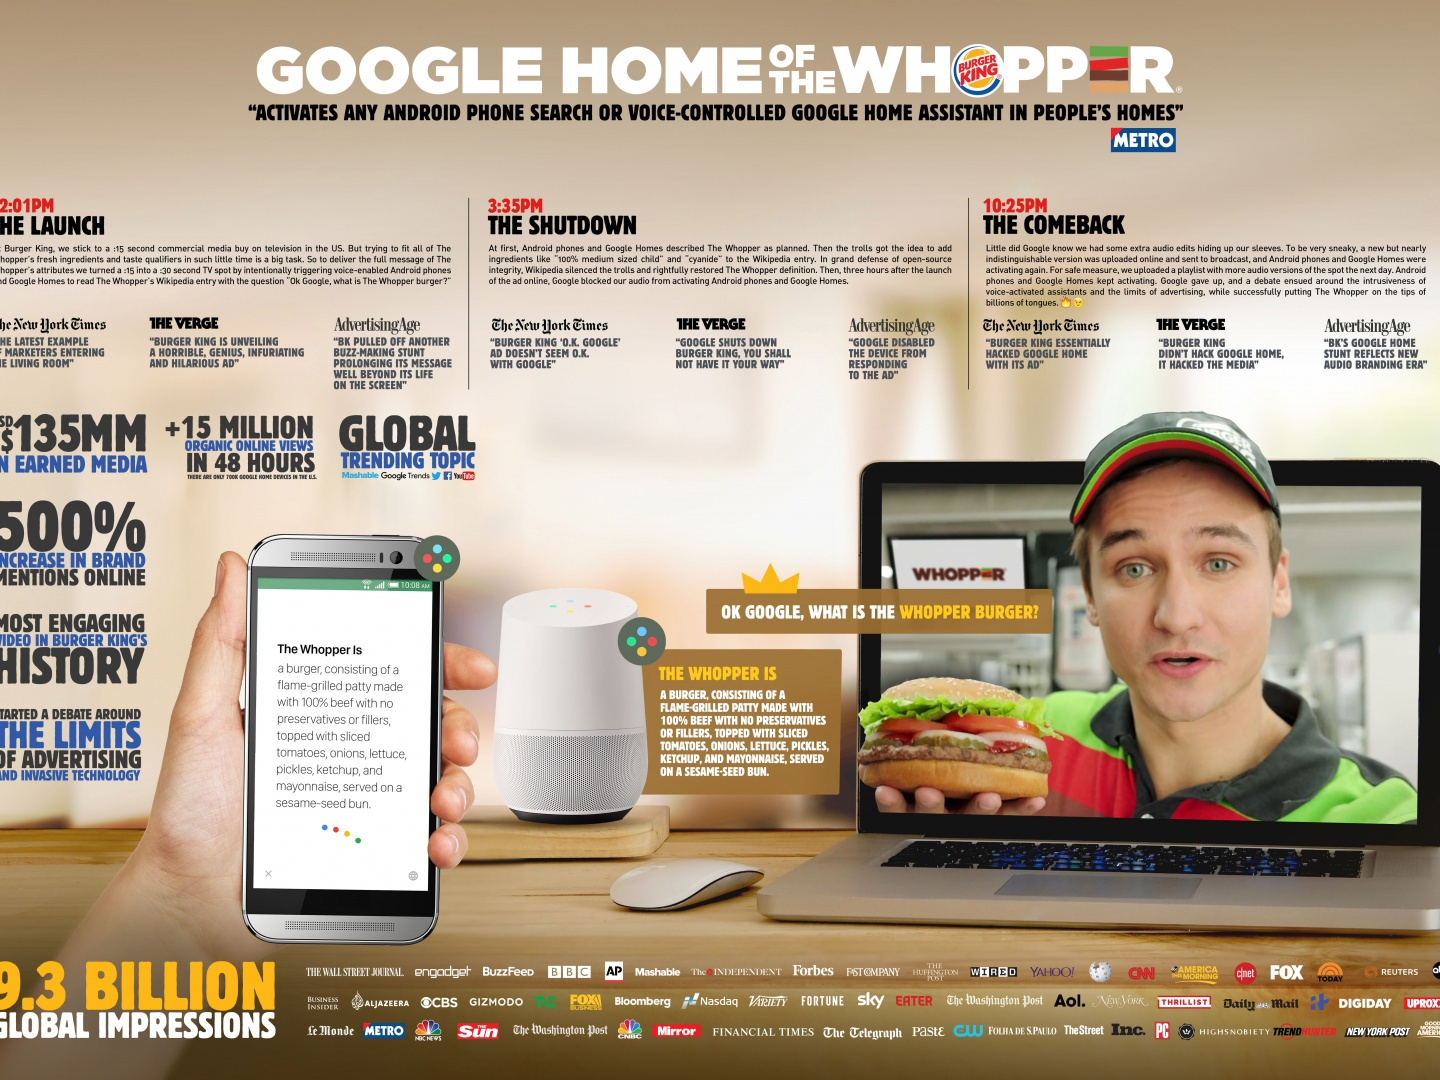 Google Home of The Whopper Thumbnail